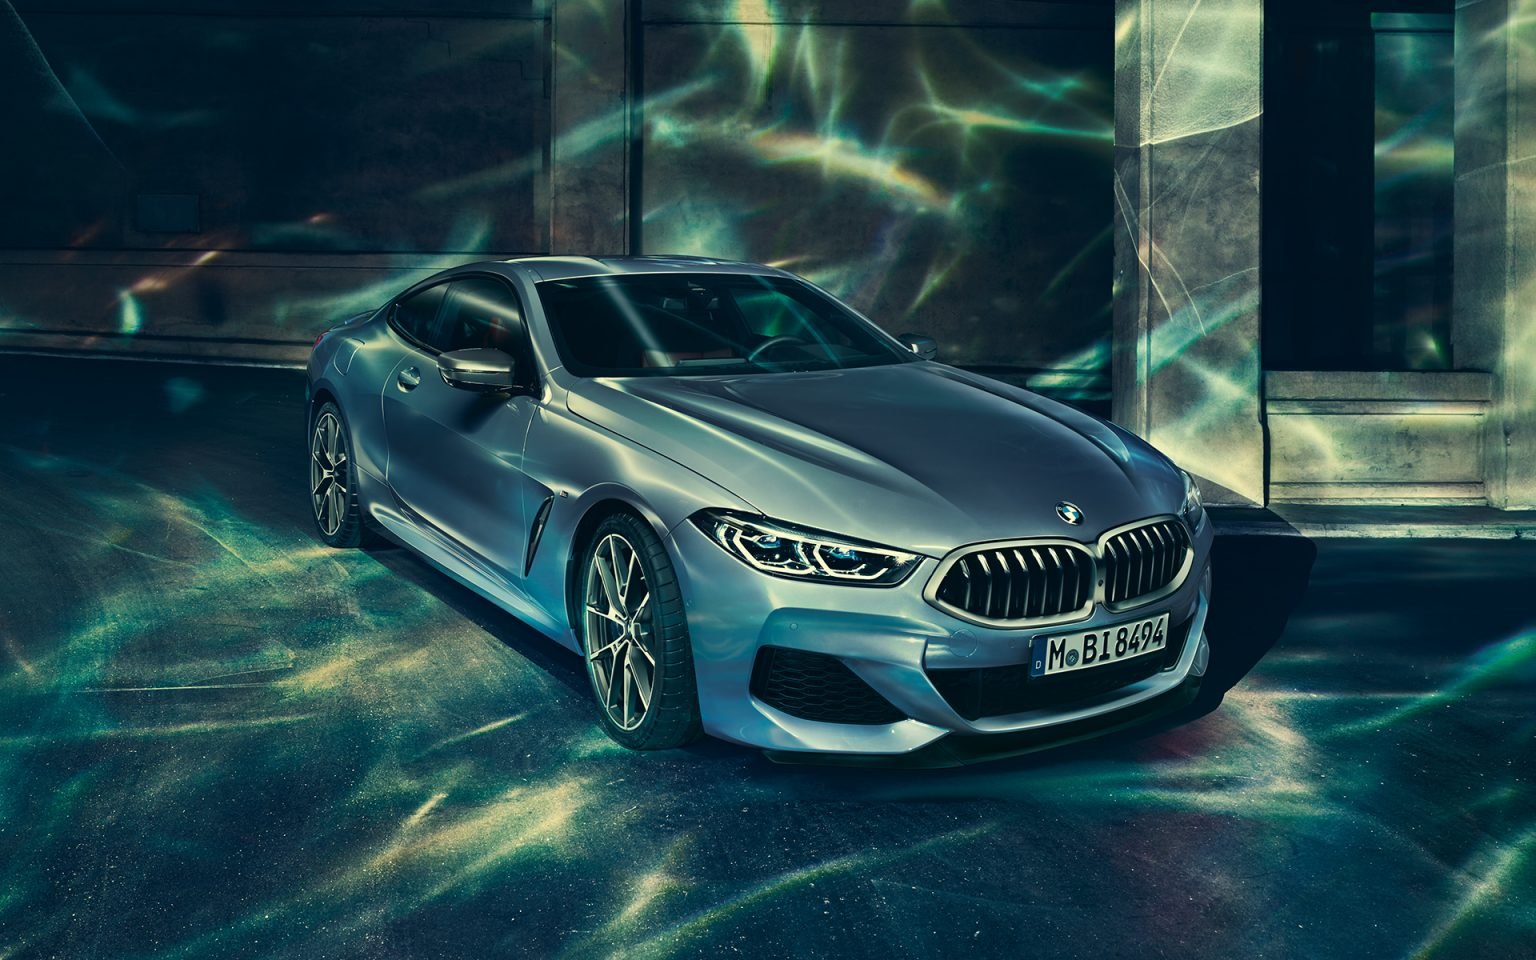 bmw-8series-coupe-gallery-wallpaper-02.jpg.asset.1527577197149